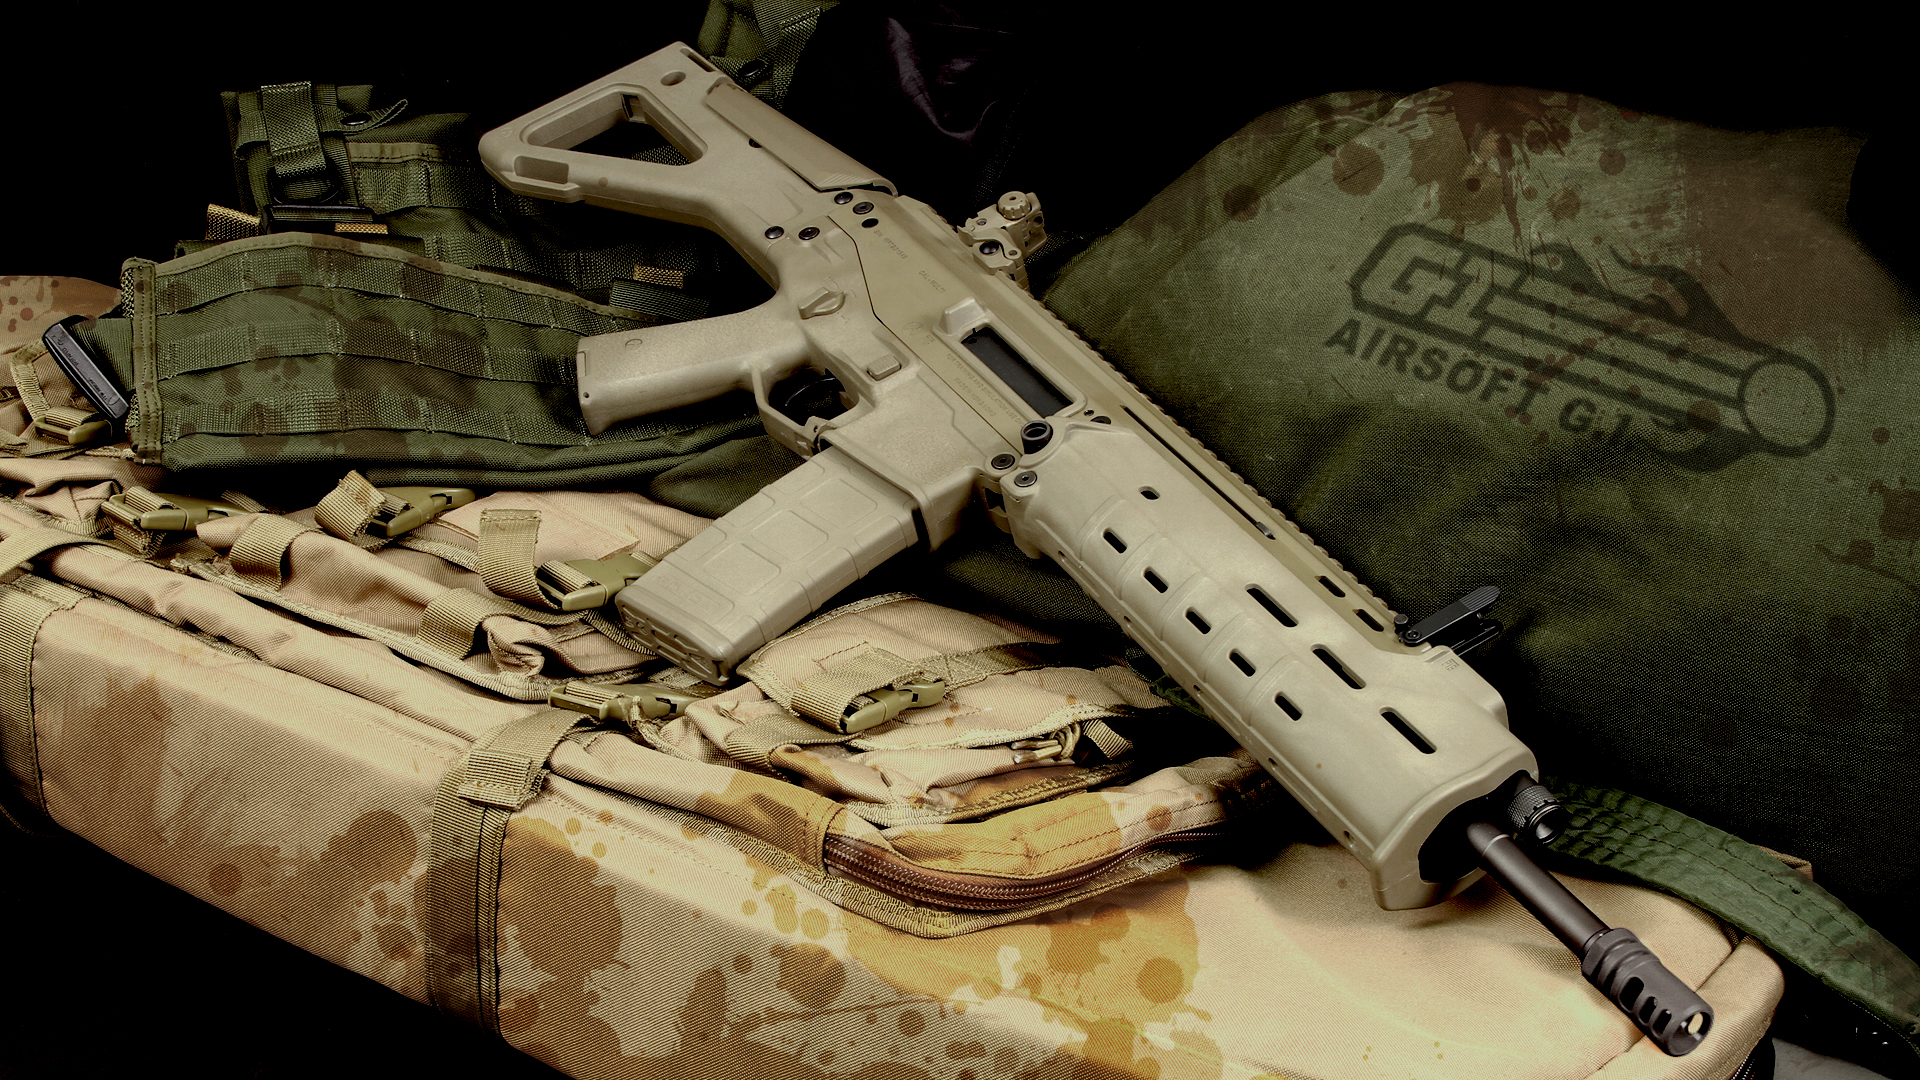 Ak 47 Iphone Wallpaper Assault Rifle Full Hd Wallpaper And Background Image